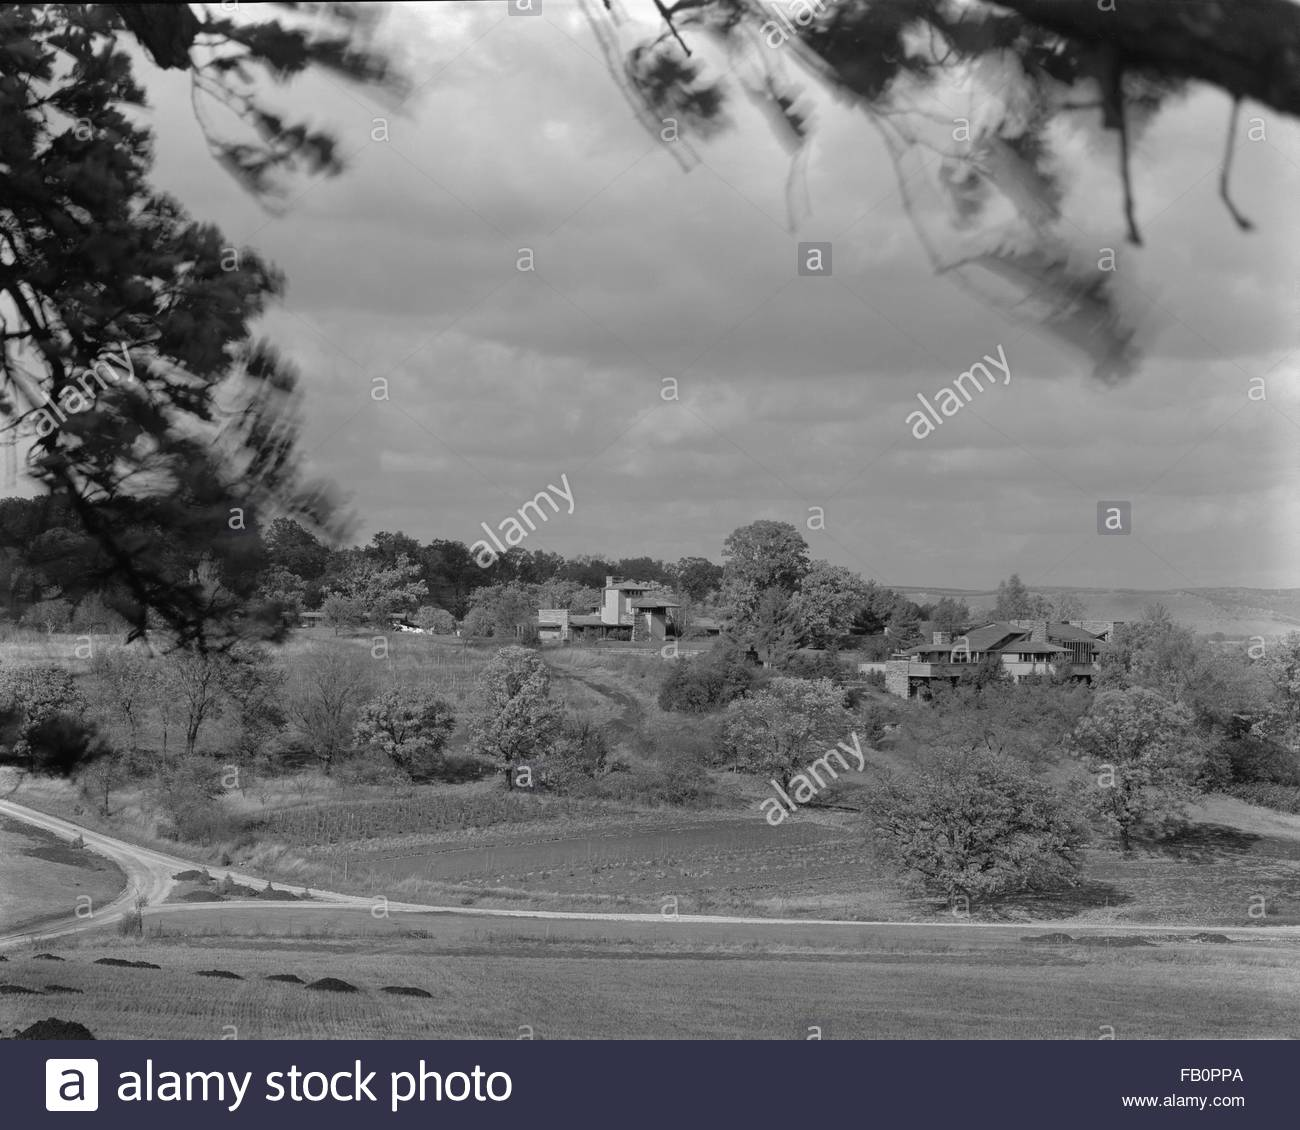 Taliesin East in Spring Green (Wis.), 1937 Dec. Site property and a portion of the site from an adjacent hill. - Stock Image